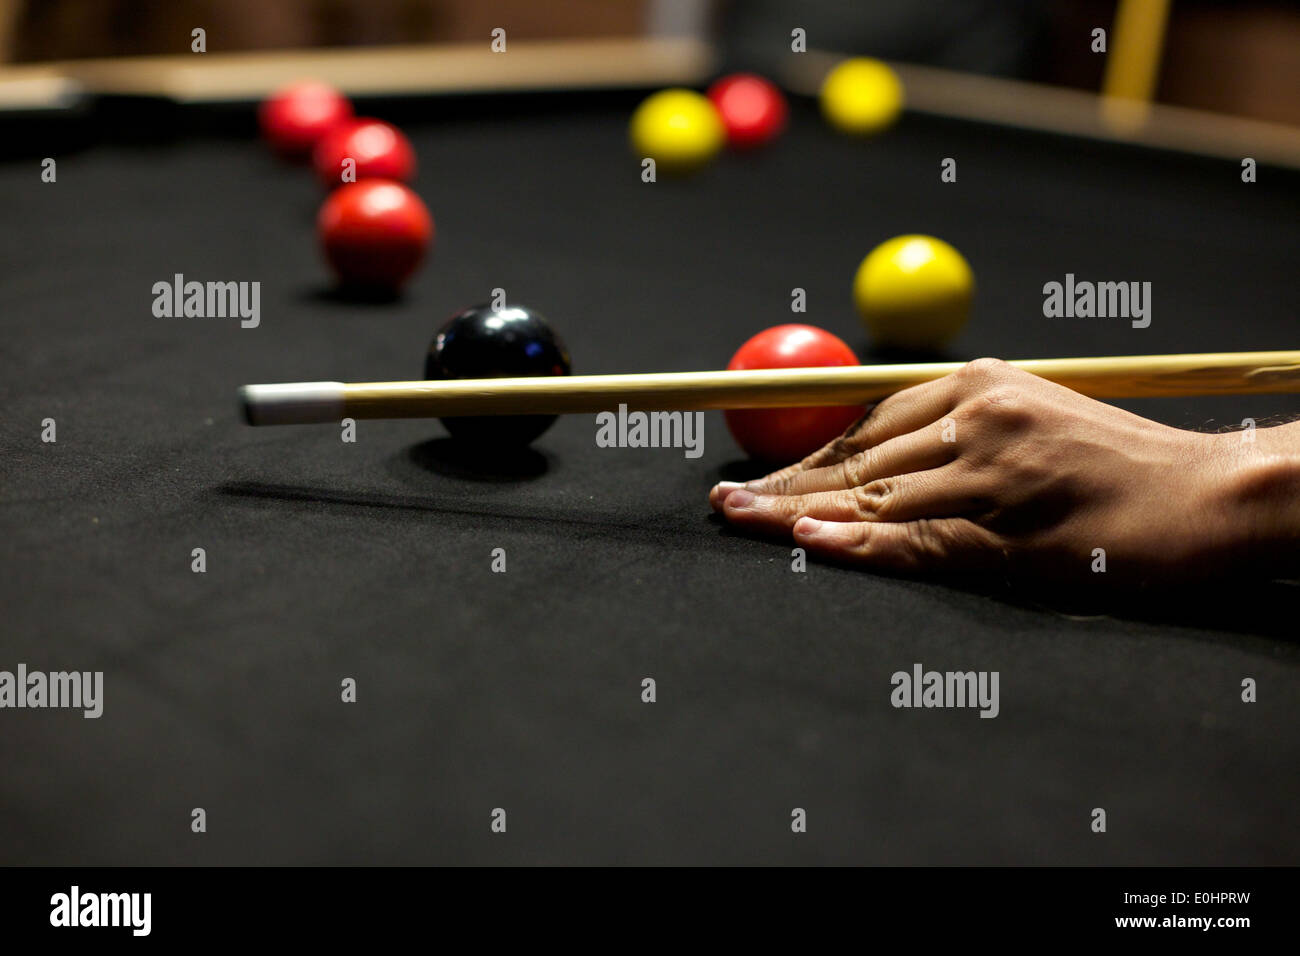 close up of hand and cue on pool table - Stock Image